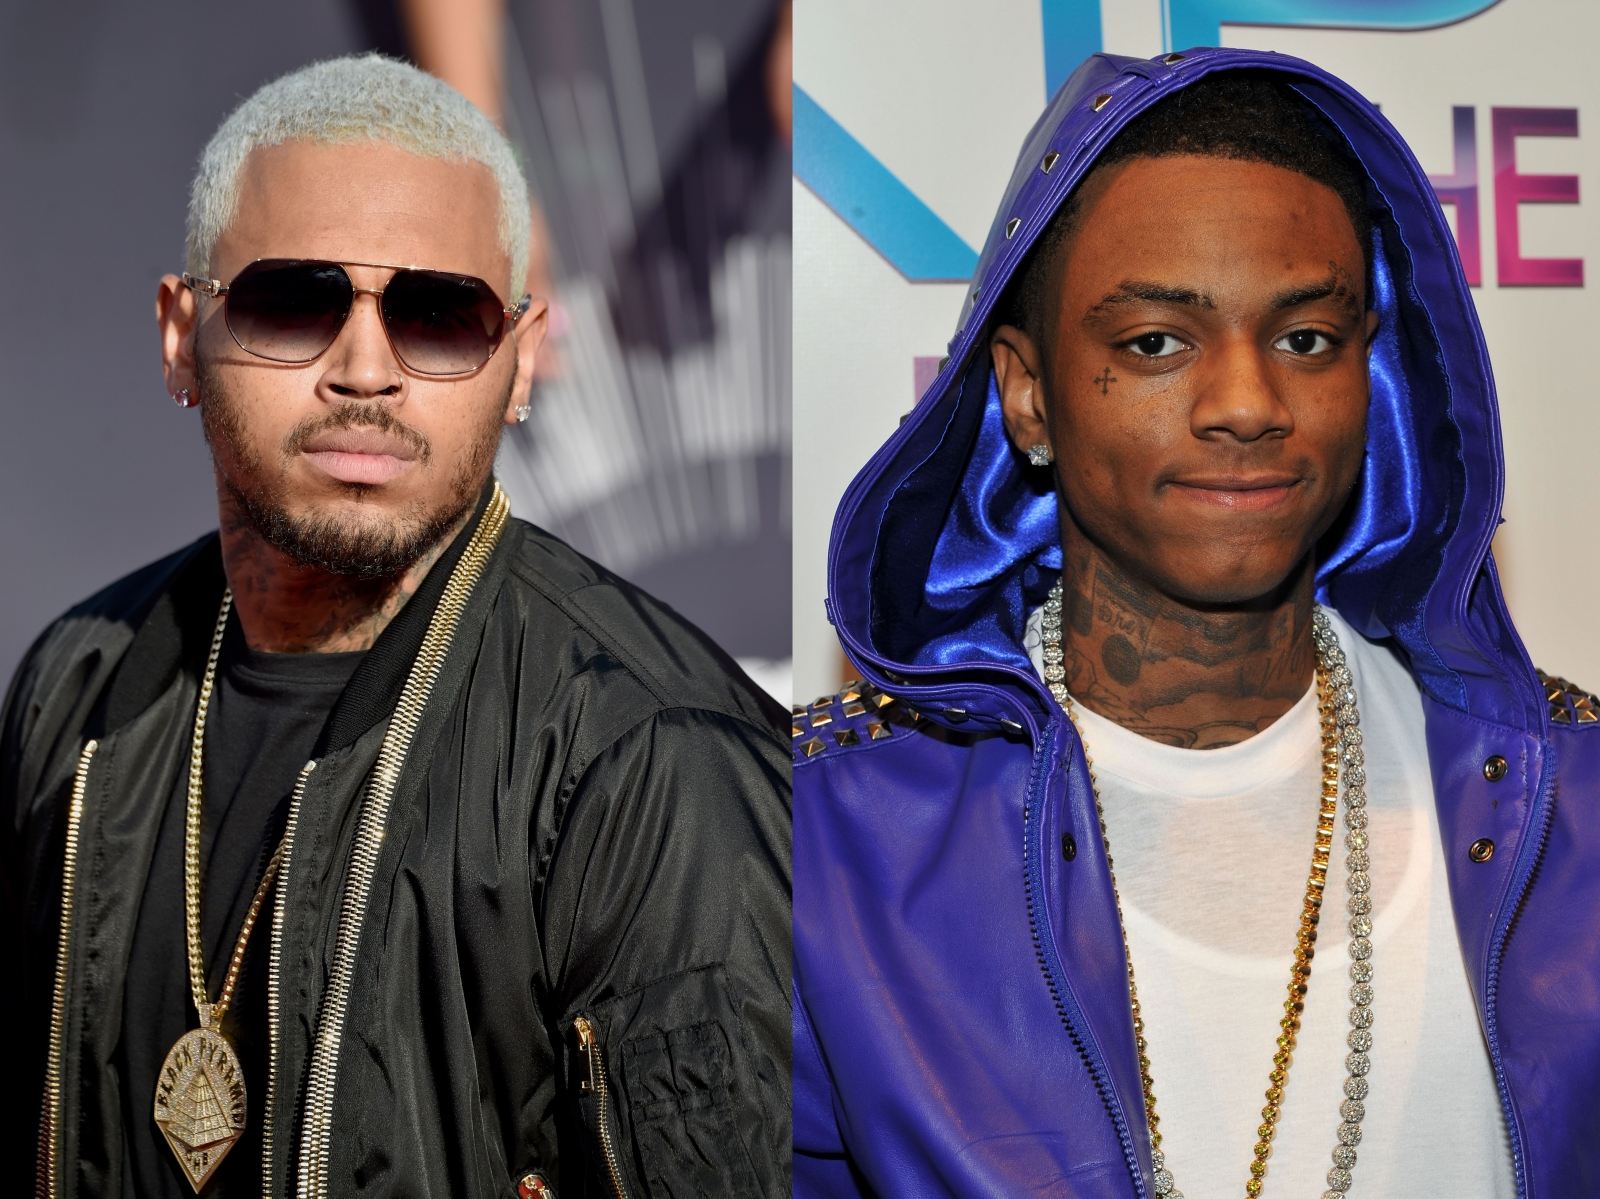 Chris brown and Soulja Boy